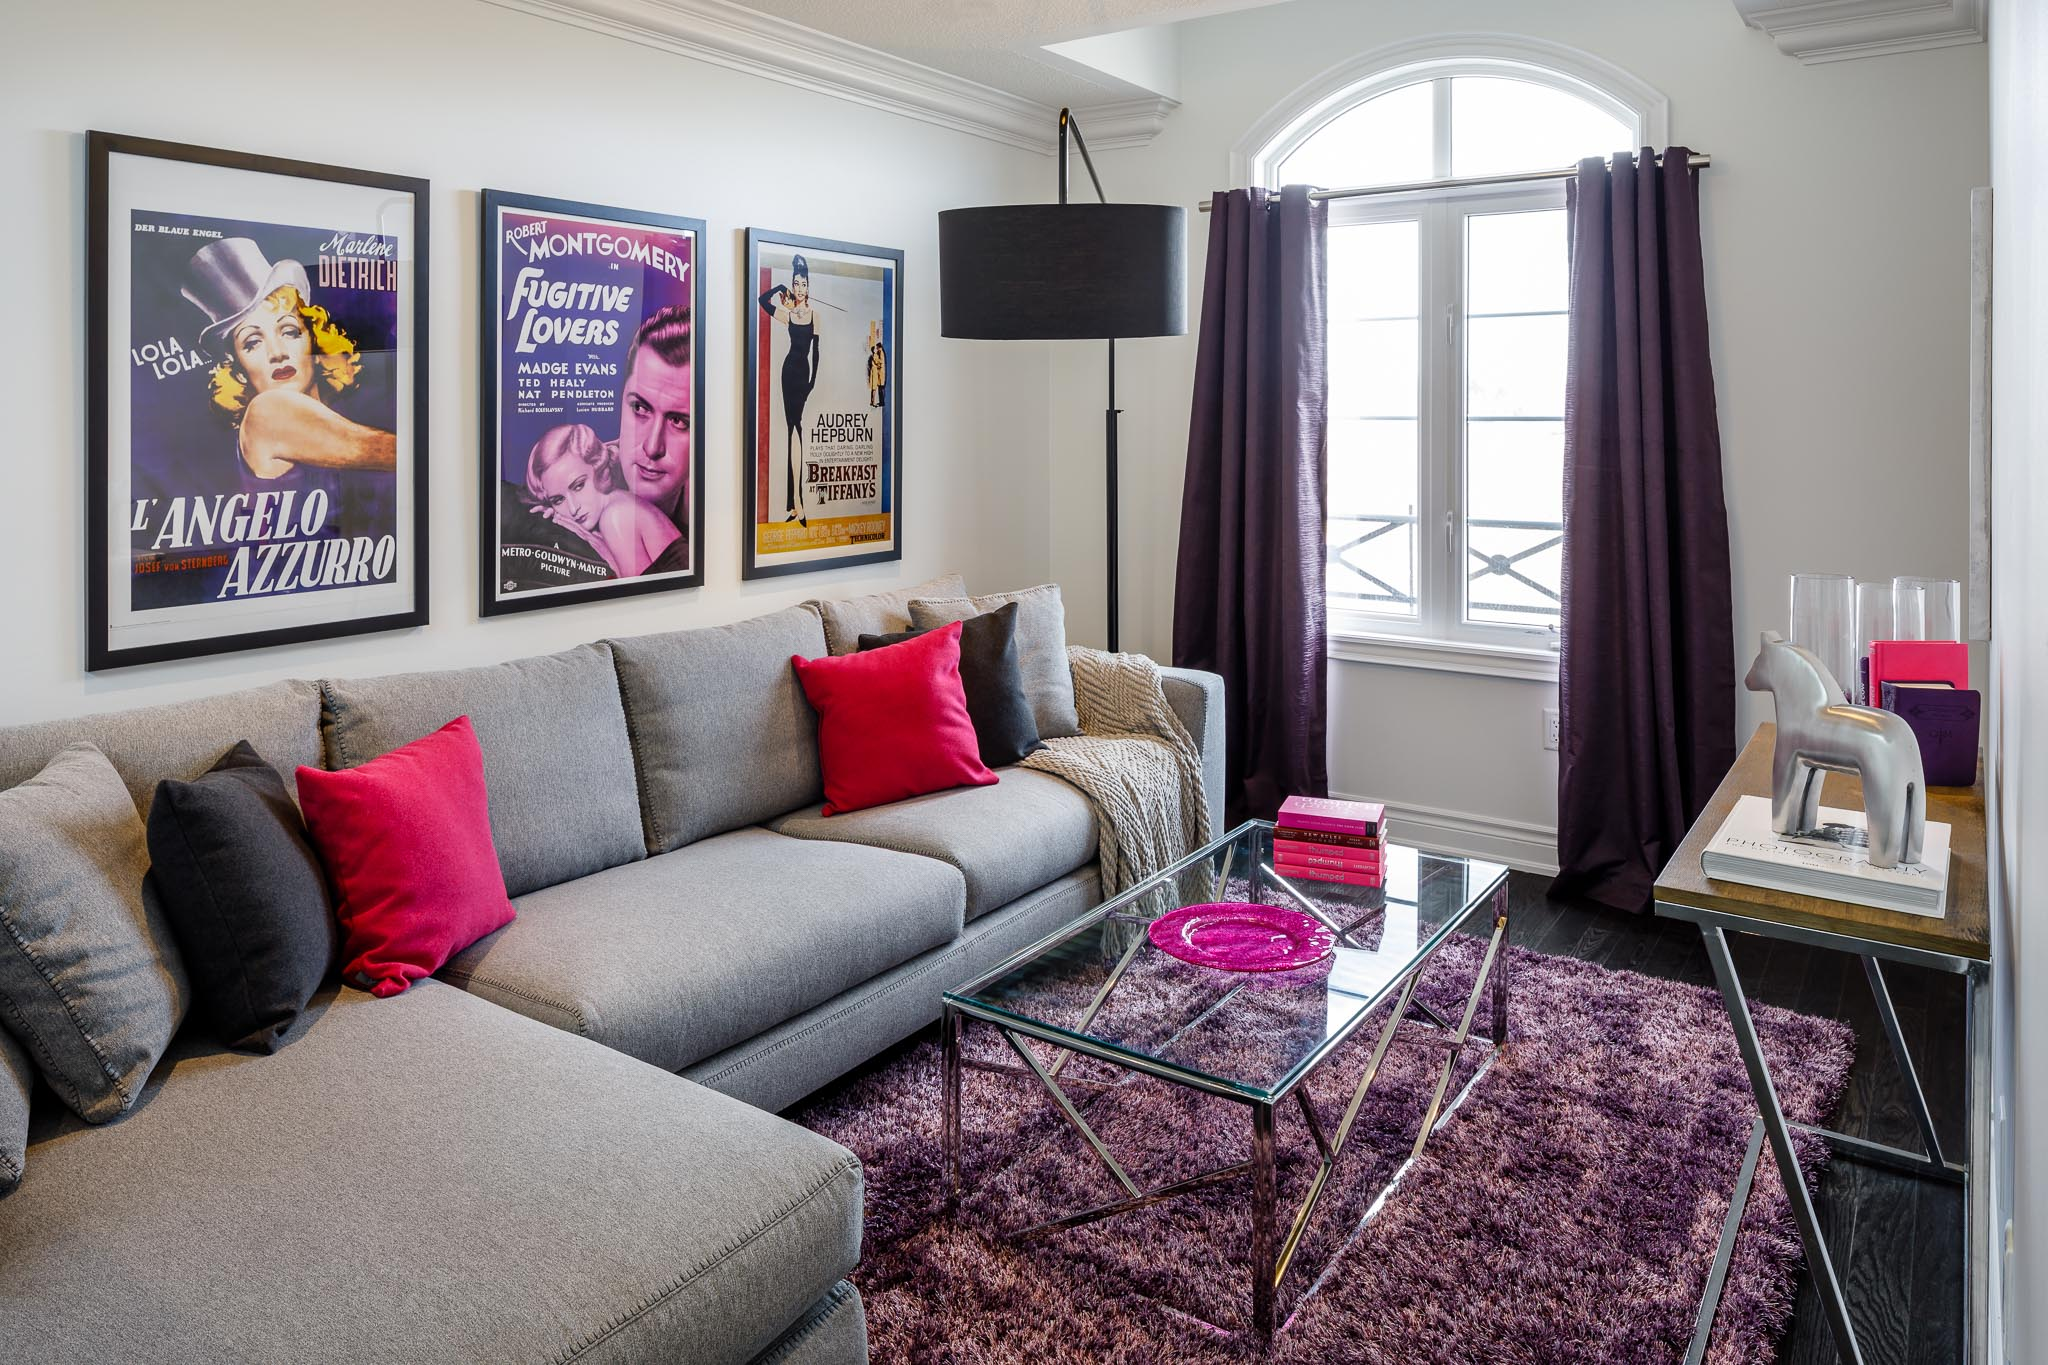 Great Gulf Westfield family room with large movie posters, purple rug, and grey sectional